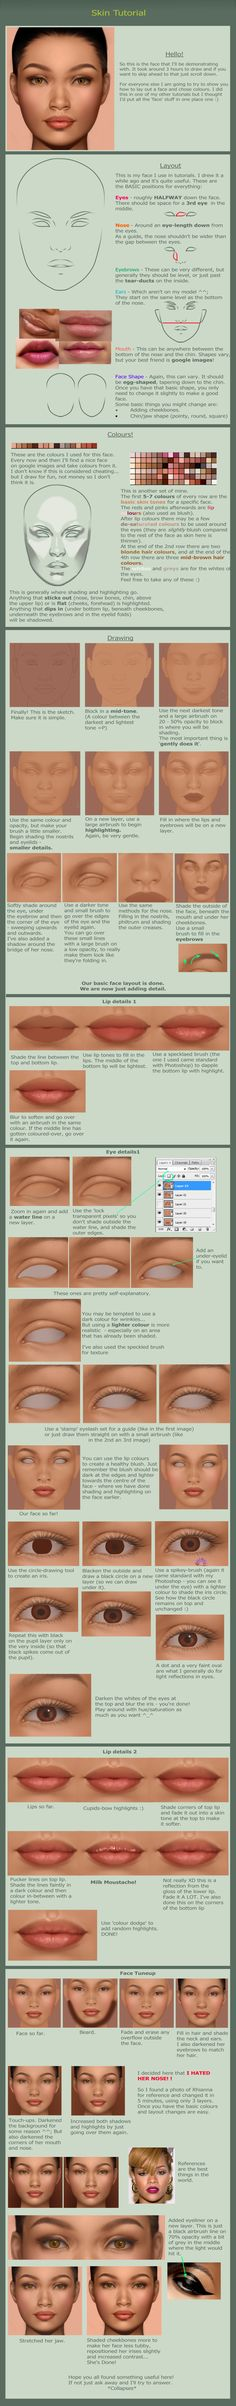 Massive Face Tutorial by ~gothic-icecream on deviantART, Resources for Art Students / Art School Portfolio Work at CAPI ::: Create Art Portfolio Ideas at milliande.com , How to Draw Faces